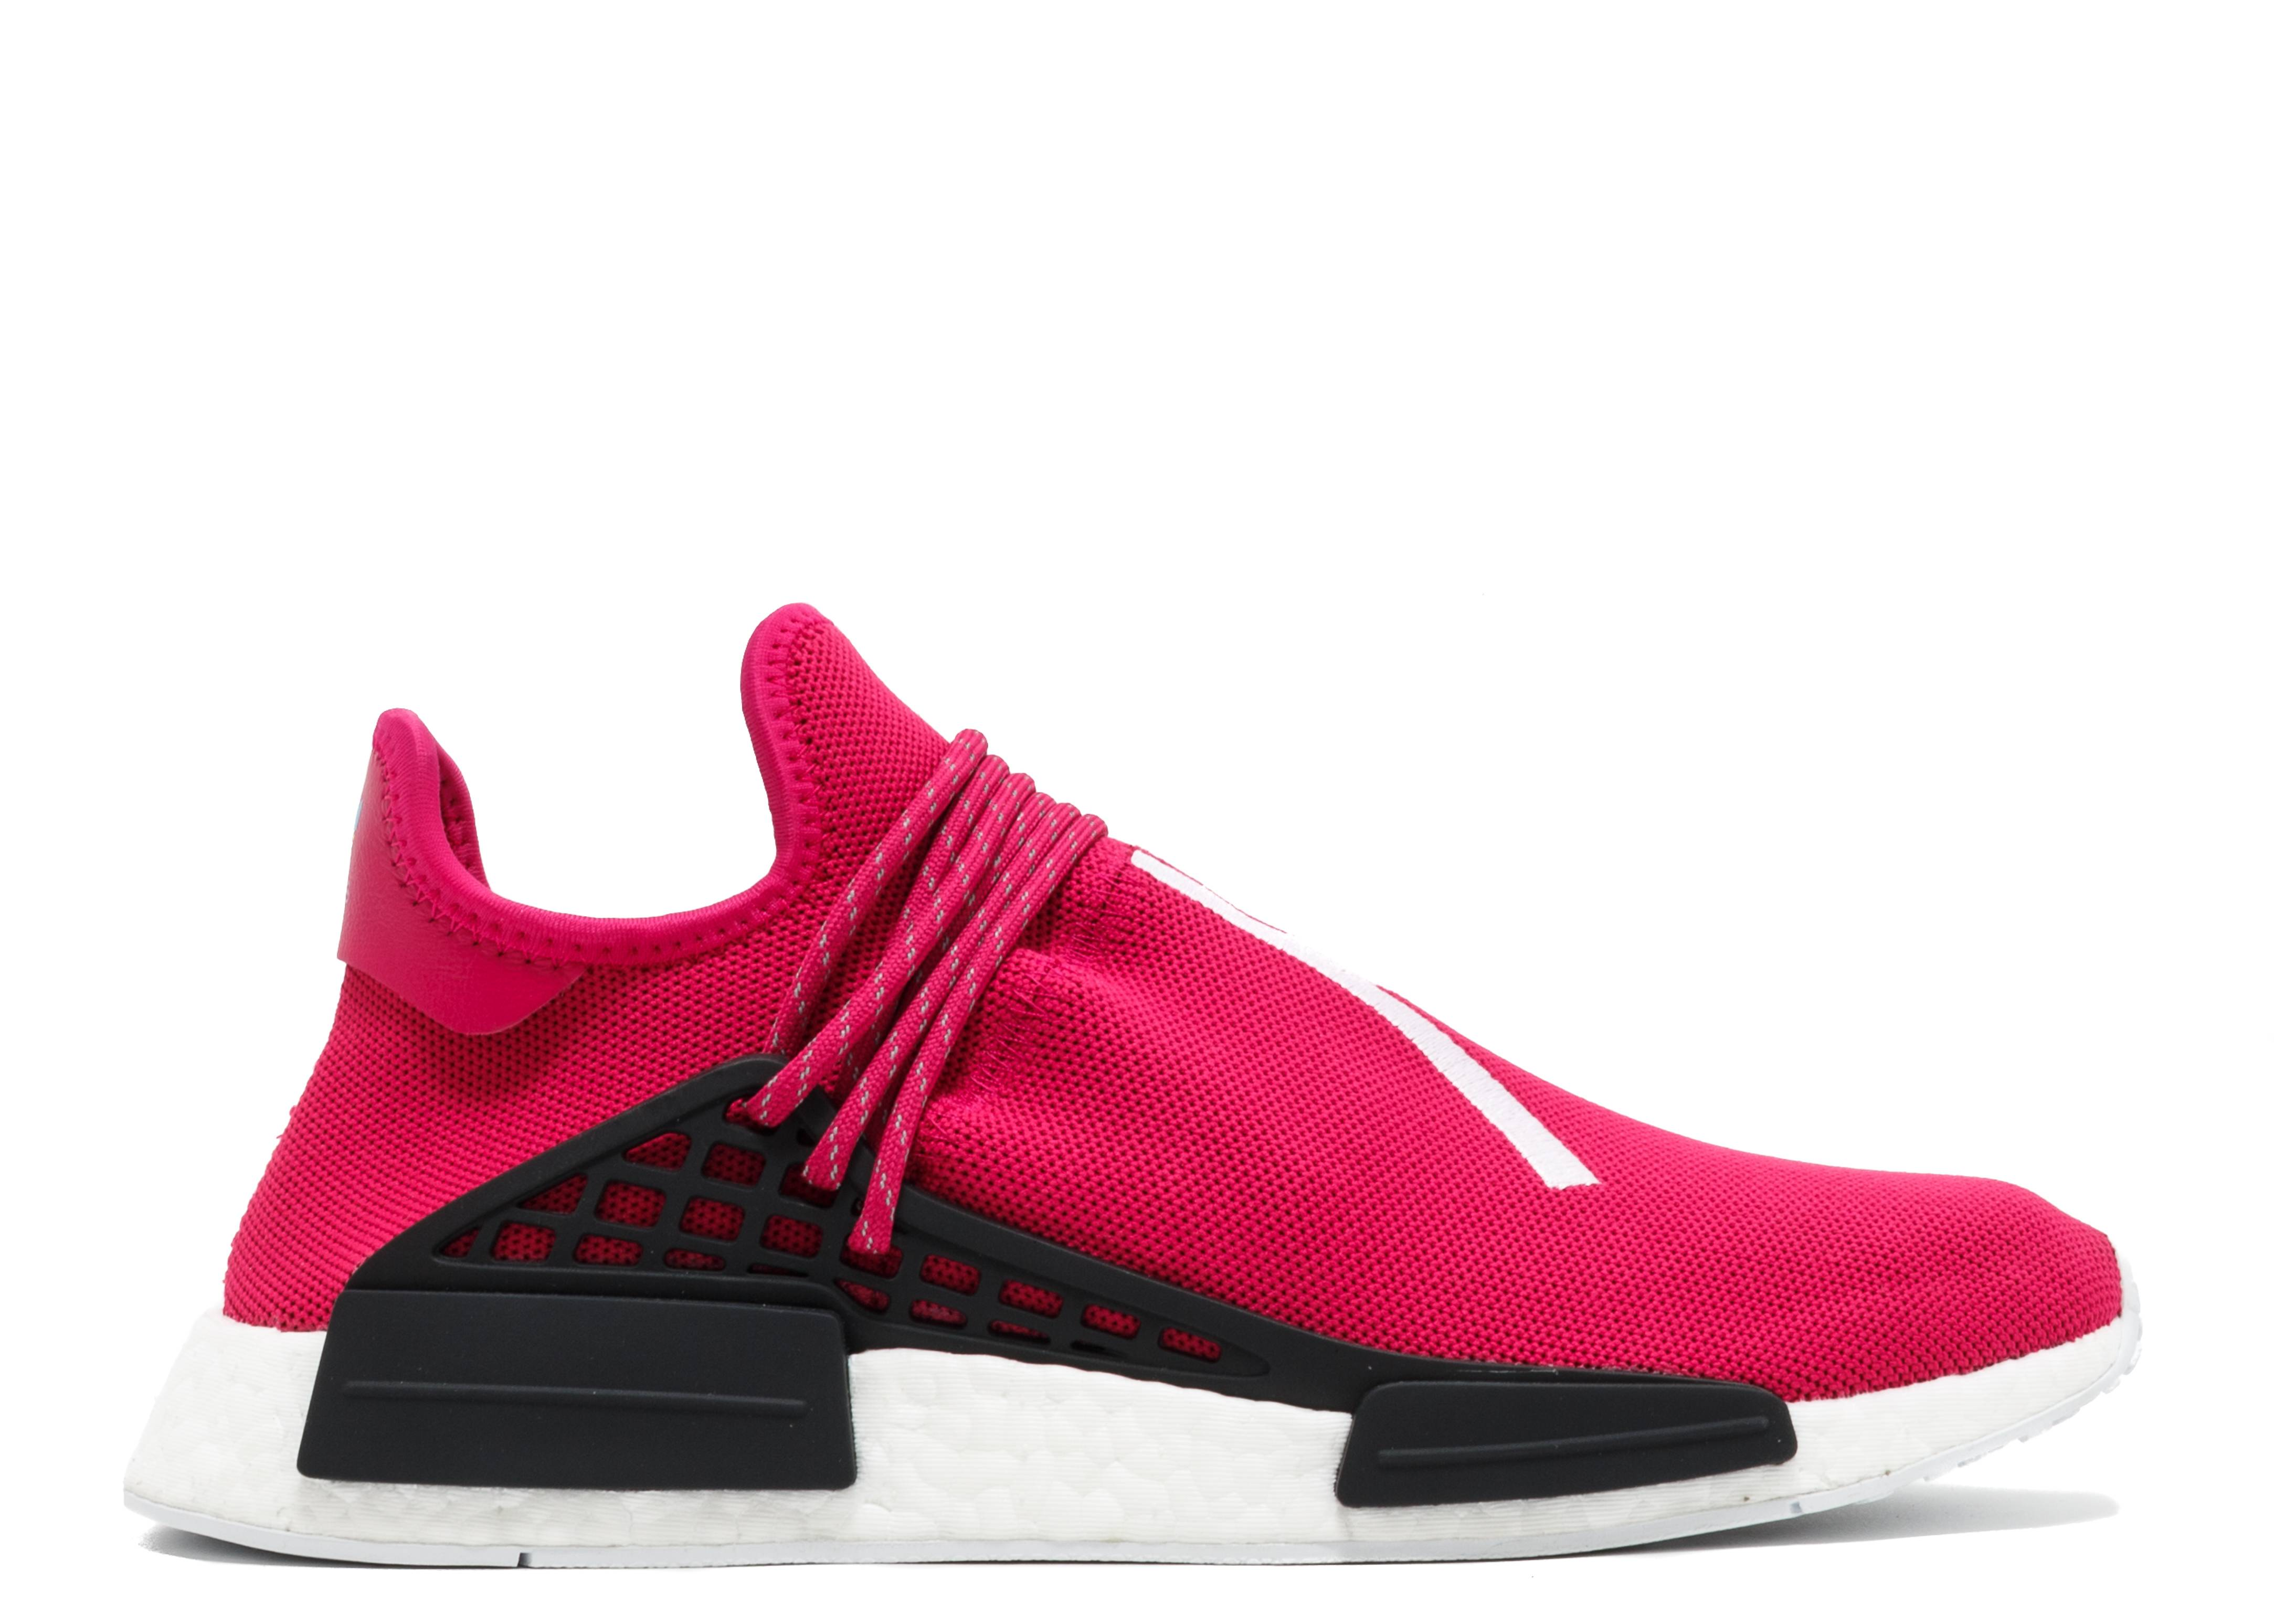 best website 875e7 283a5 pw human race nmd